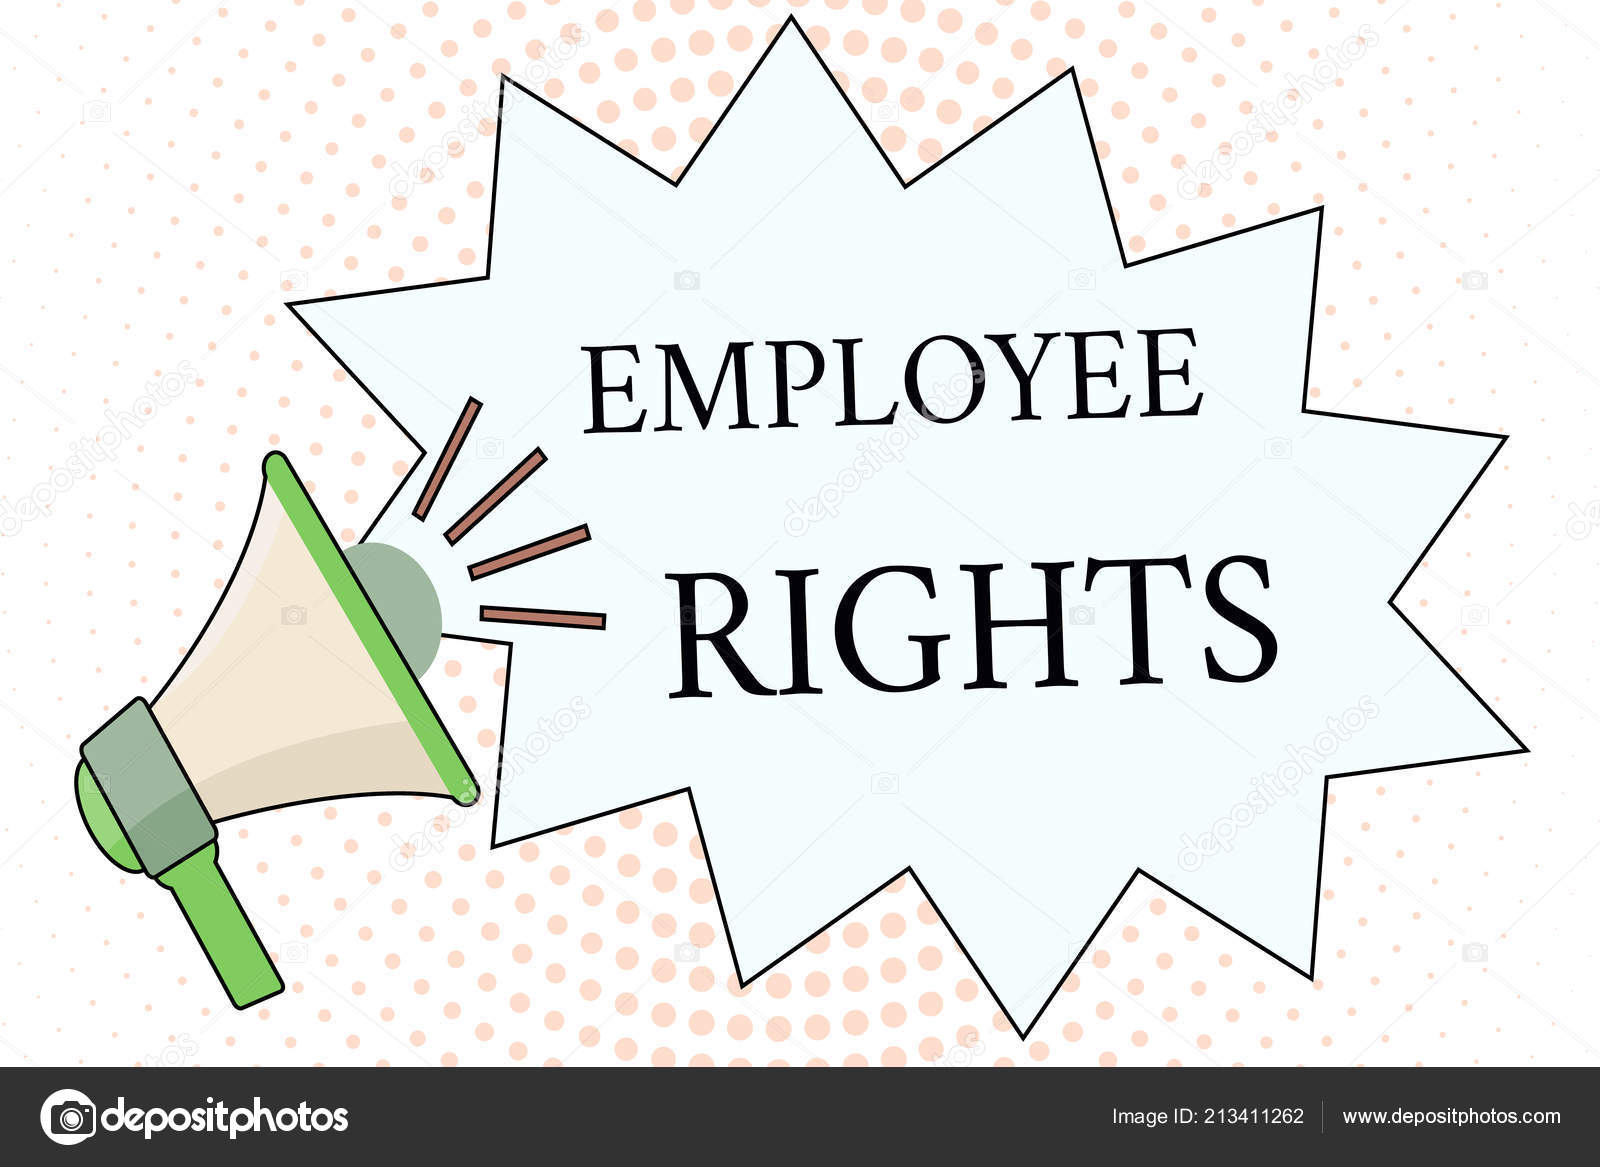 physical privacy rights in the workplace Teacher and school staff rights if you have any questions regarding teacher rights or school staff rights, please contact us for a free teacher rights and school staff rights consultation teachers and school staff including food services, maintenance and operations, office and clerical, paraeducators, special services and administration enjoy a number of rights pertaining to their employment.